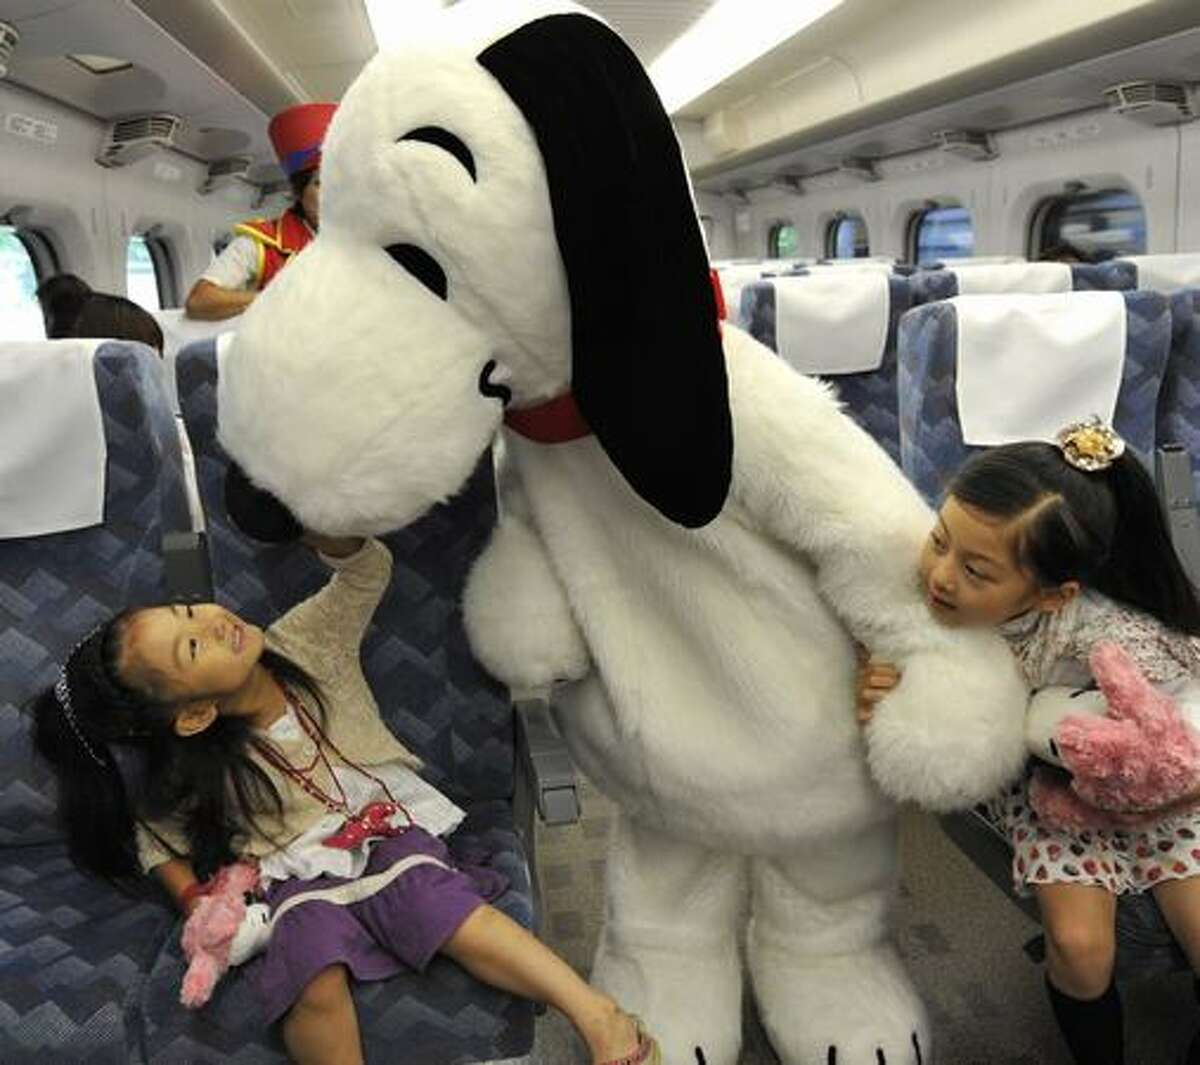 Cartoon character Snoopy greets children in the Shinkansen bullet train heading to Osaka from Tokyo for the promotion of Osaka based Hollywood theme park Universal Studios Japan on July 26, 2009.